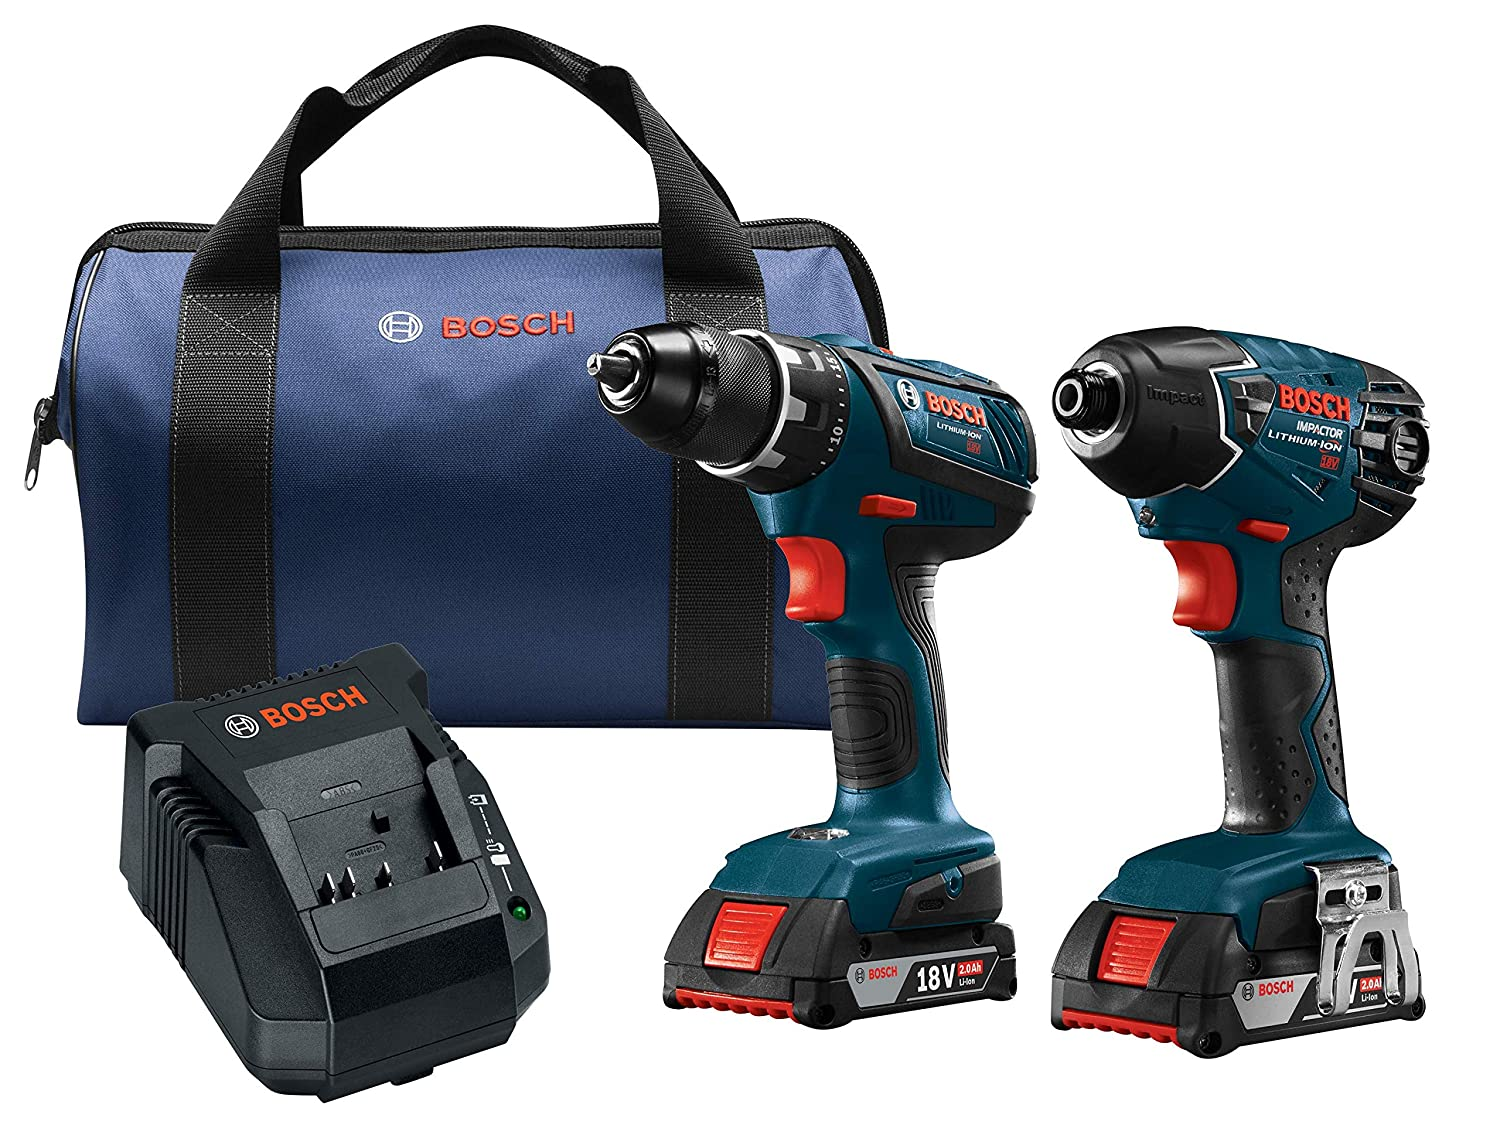 Bosch Power Tools Drill Set – CLPK232A-181 18-Volt Cordless Drill Driver Impact Combo Kit with 2 Batteries, 18V Charger and Soft Carrying Case